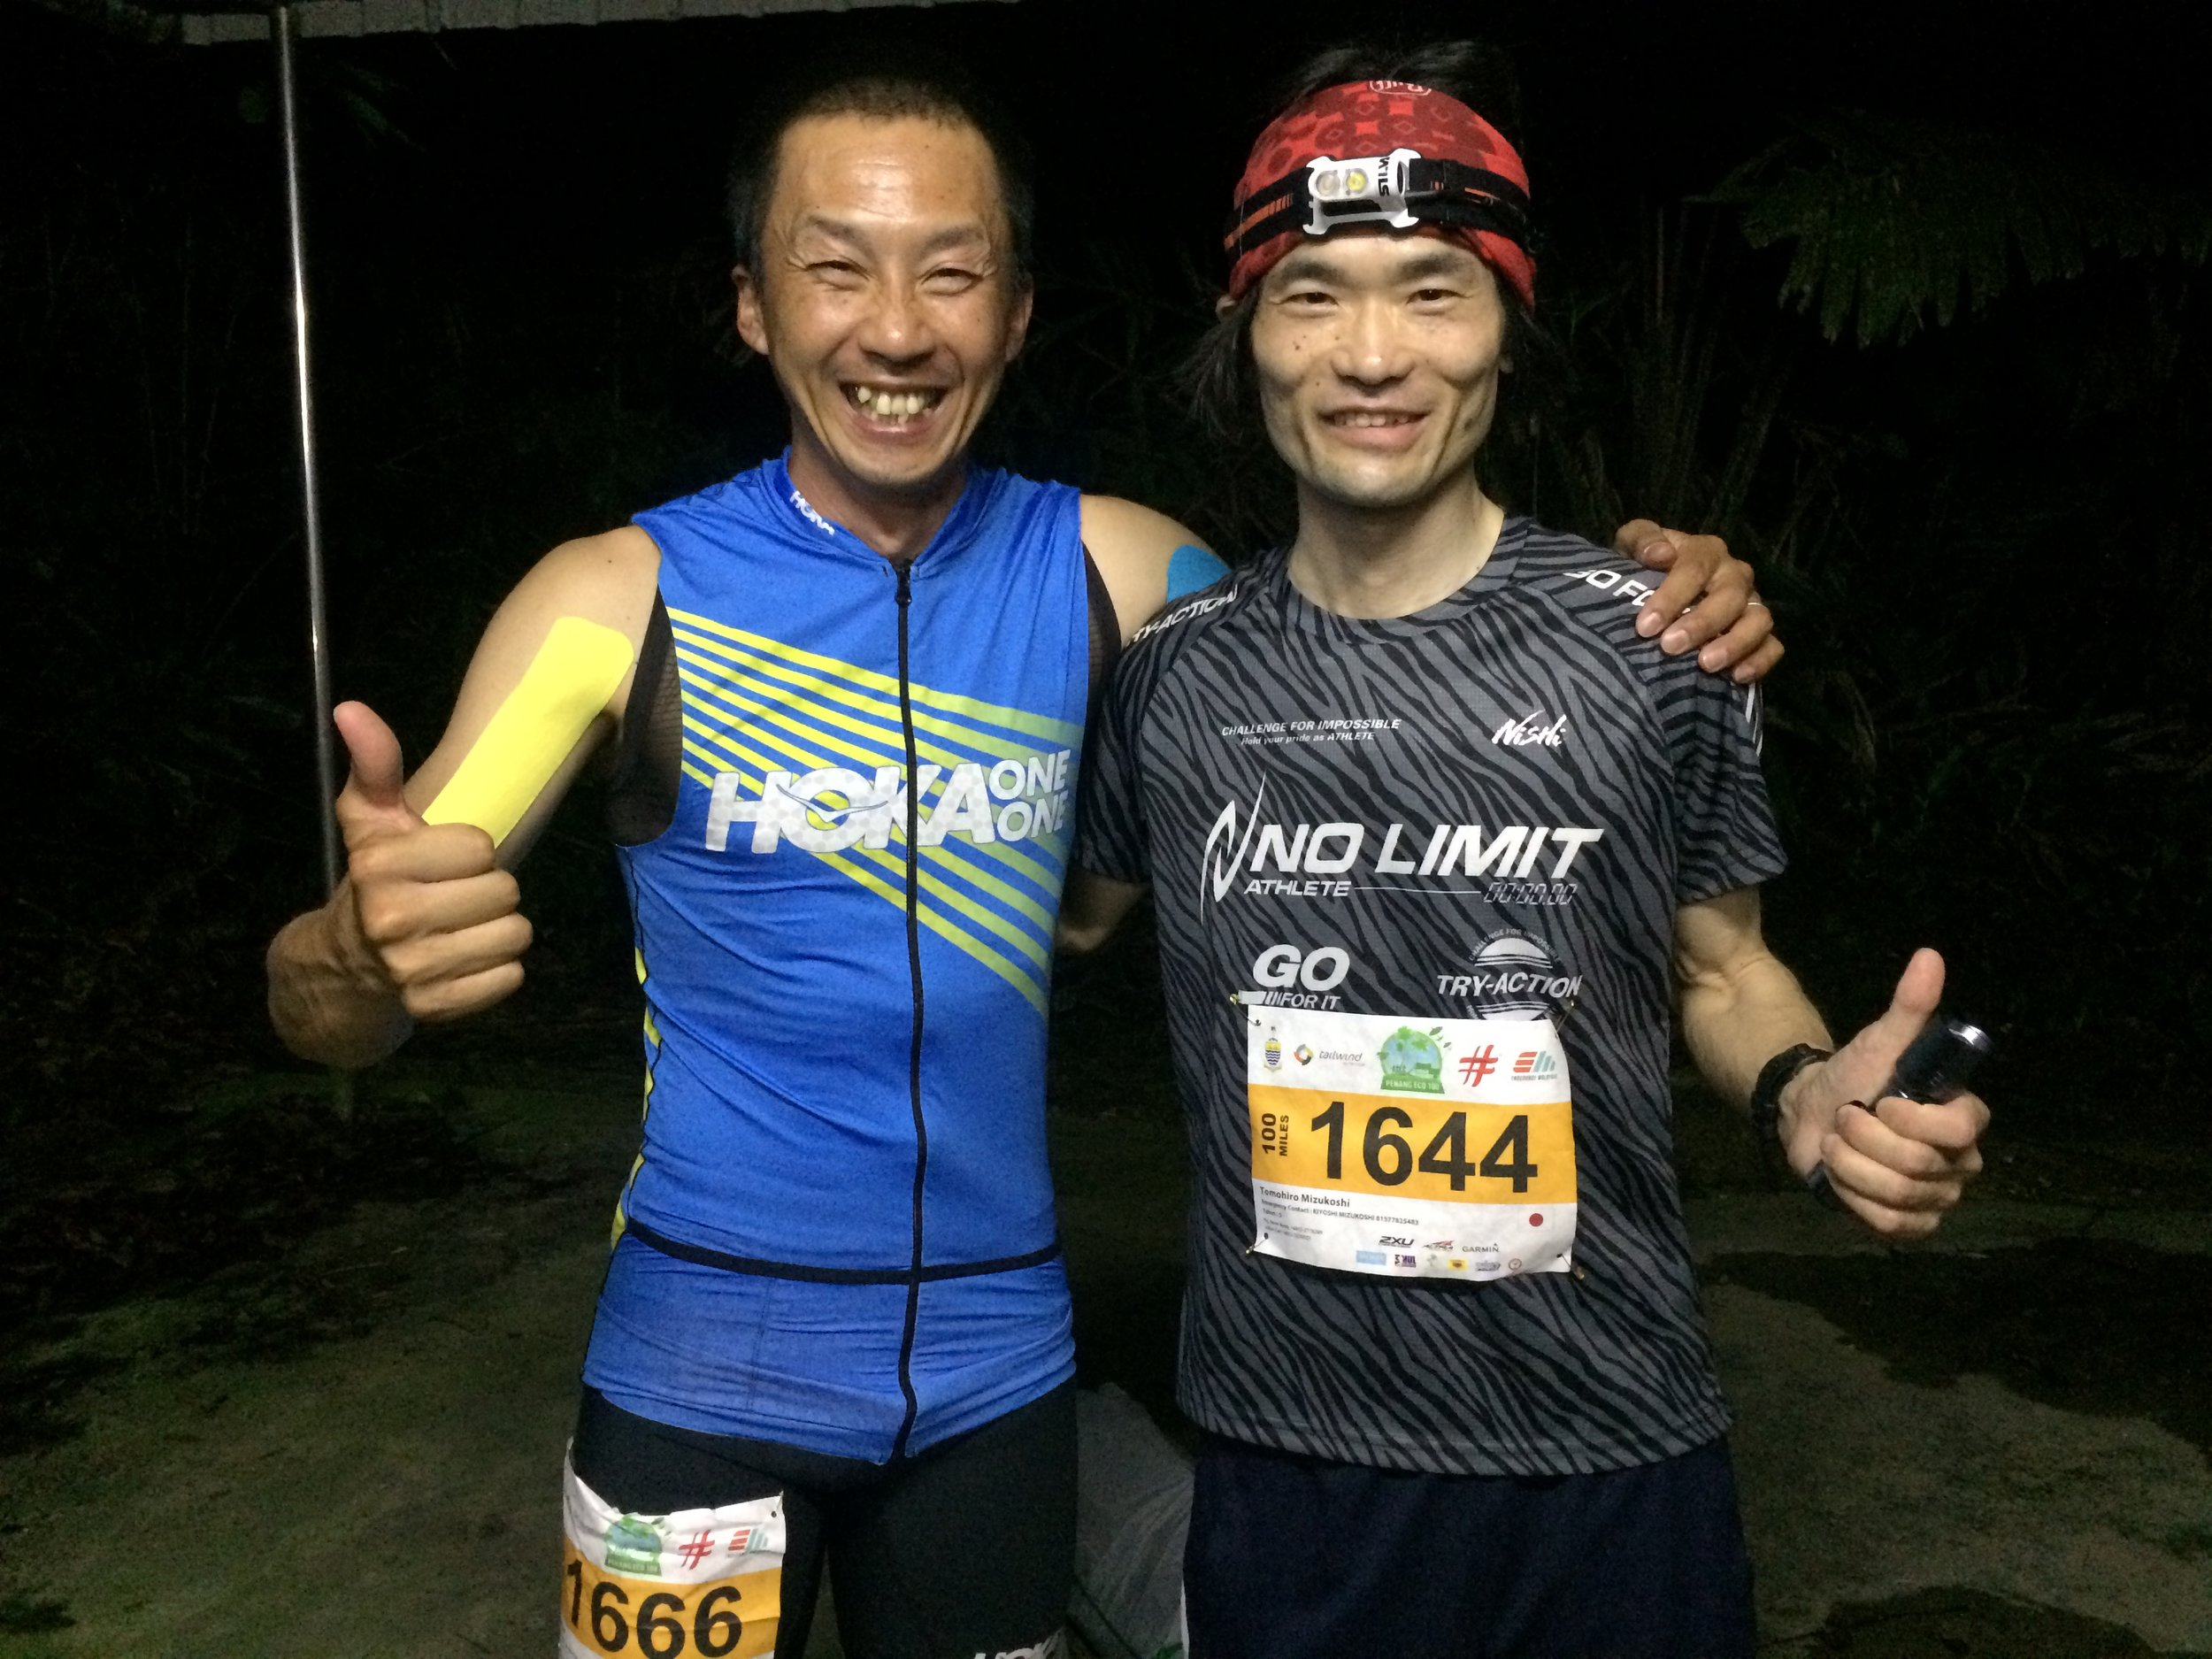 Sota Ogawa and Tomohiro Mizukoshi finds themselves together again this weekend